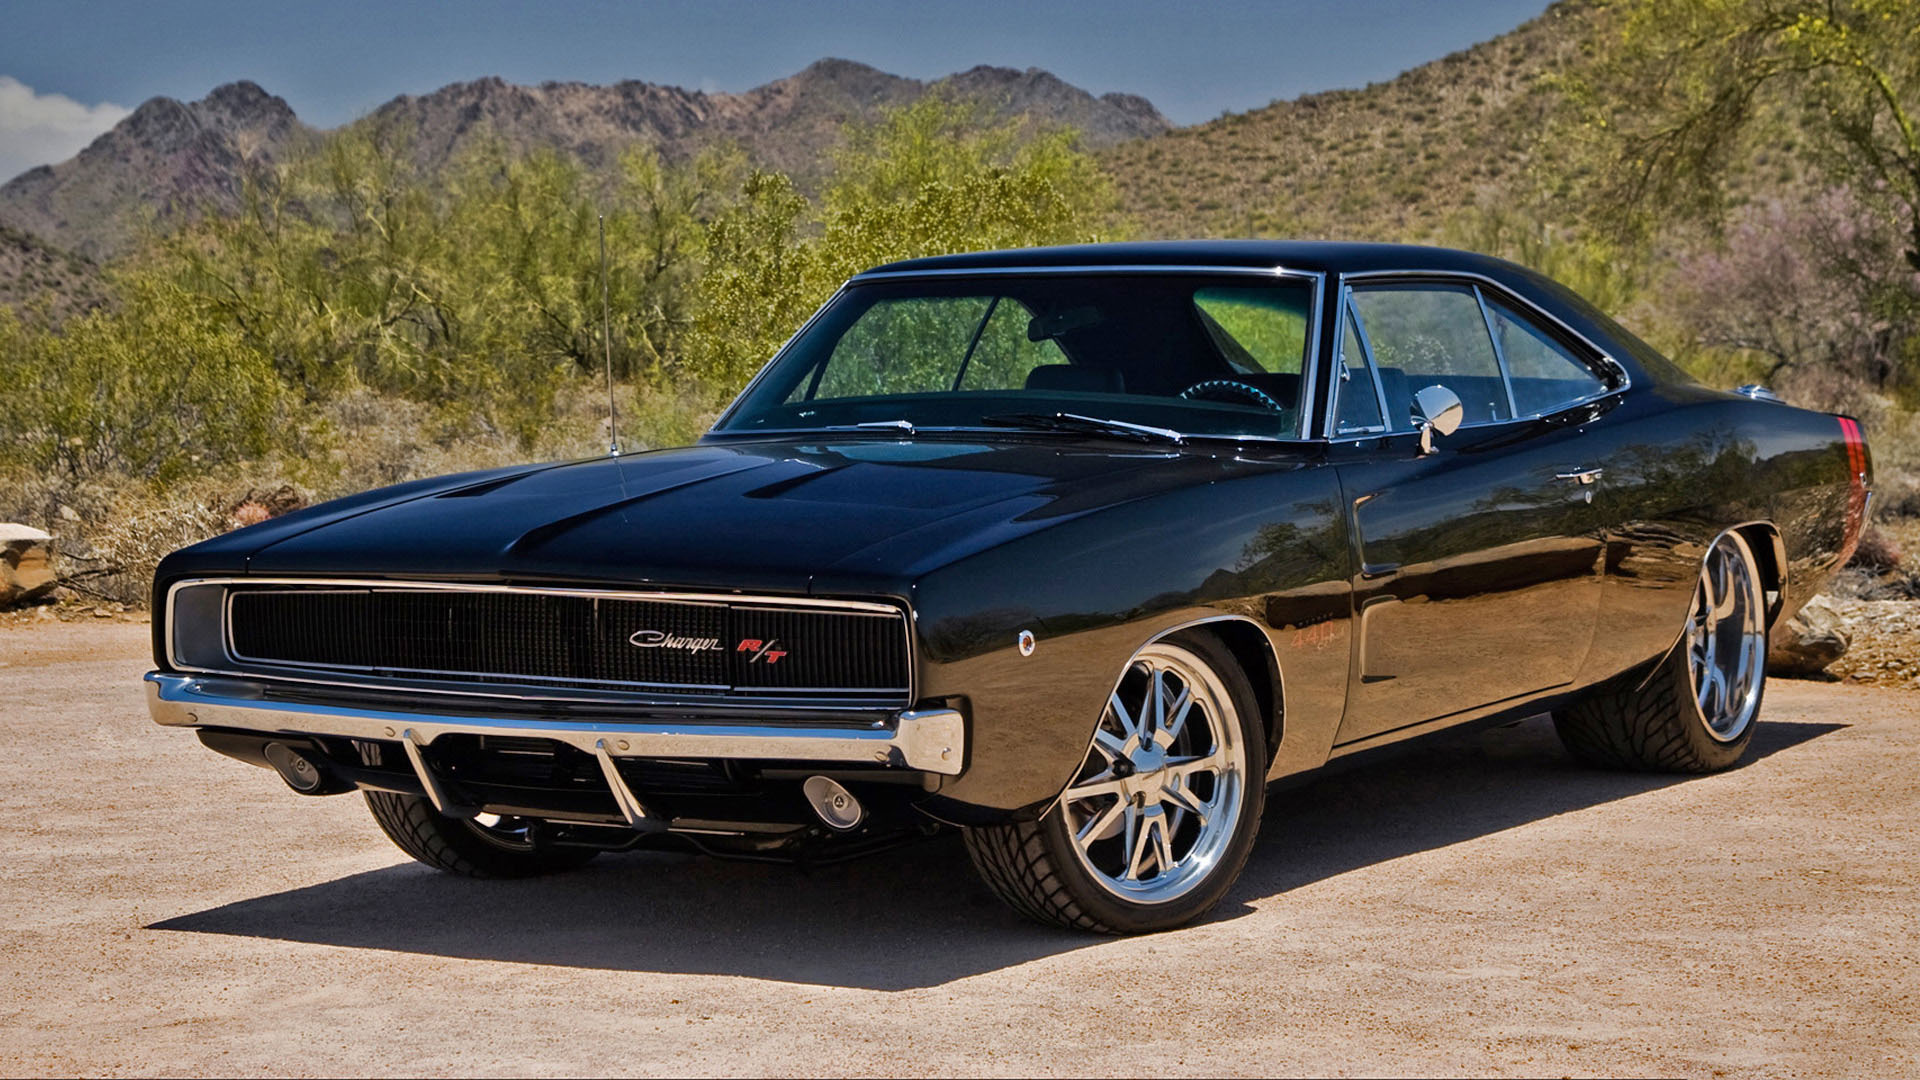 charger-wallhud-com-»-Dodge-Charger-HD-wallhud-wallpaper-wpc9003425